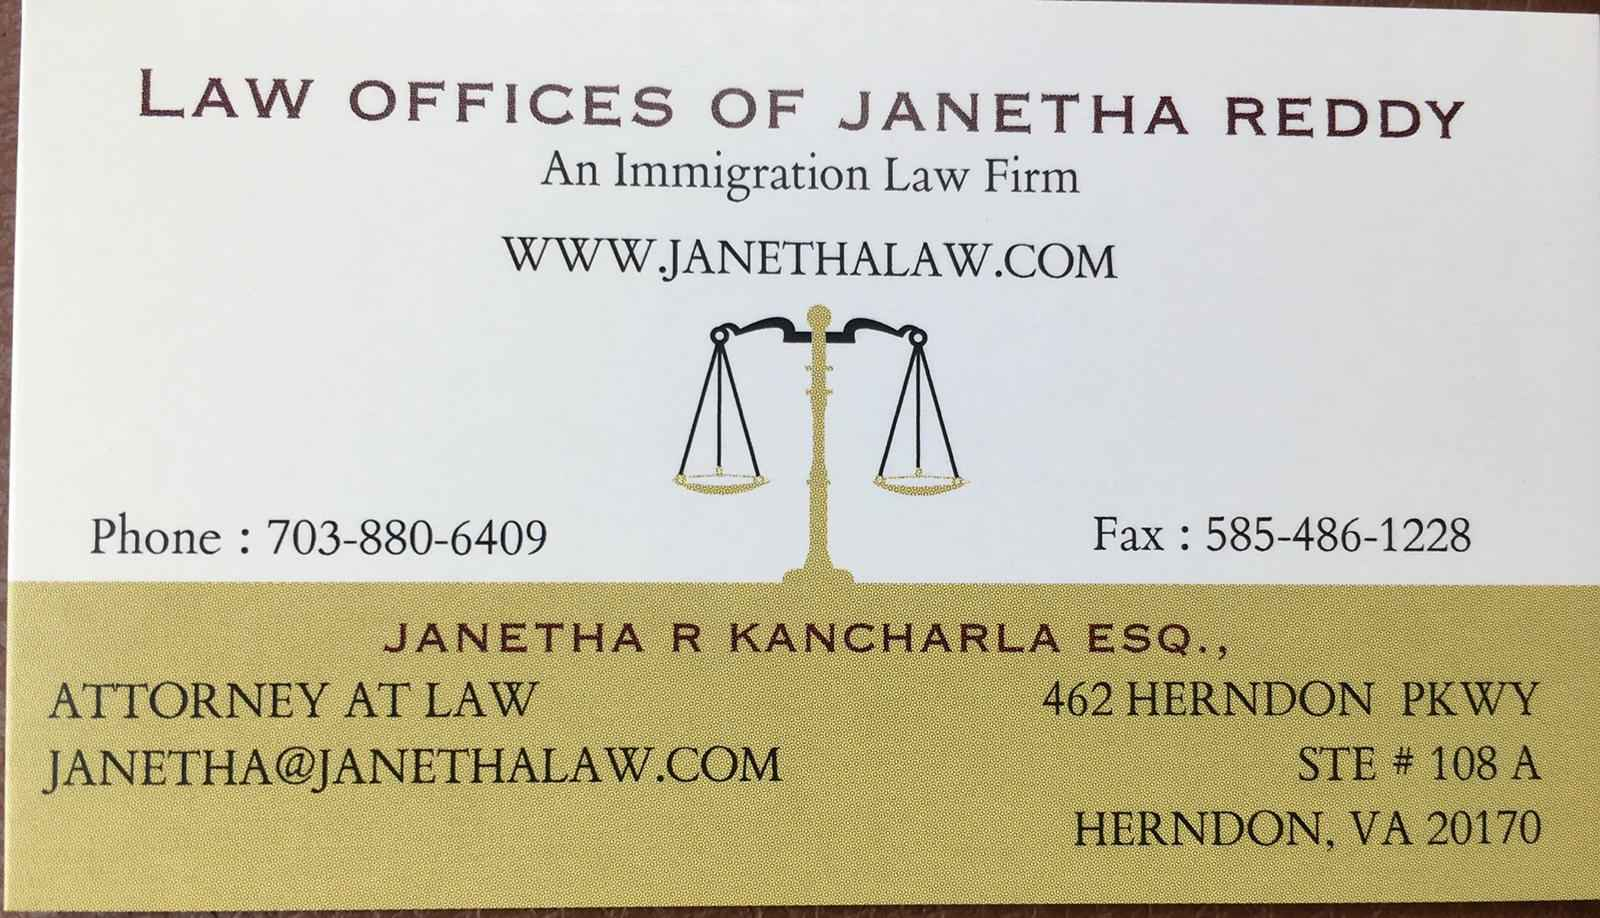 LAW OFFICES OF JANETHA REDDY